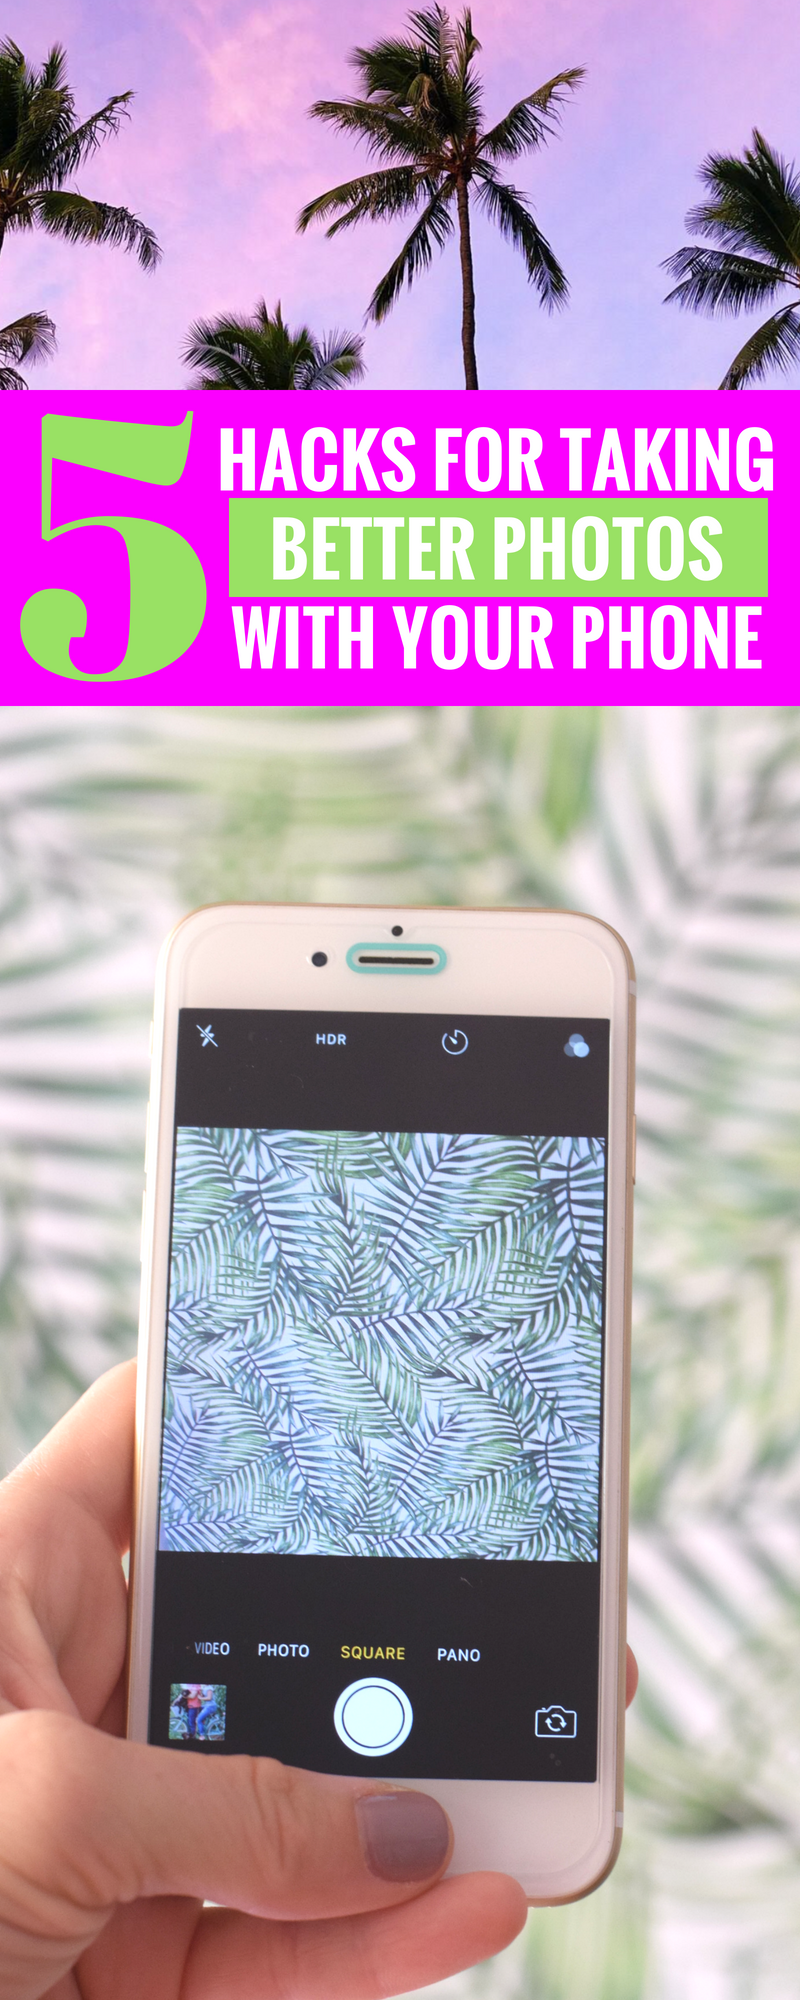 5 Tips For Taking Better Photos With Your Phone - plus my must-have photo editing apps! - Photography Tips - Easy Photo Tips - Tips For Phone Photos - Photography Hacks - Communikait by Kait Hanson